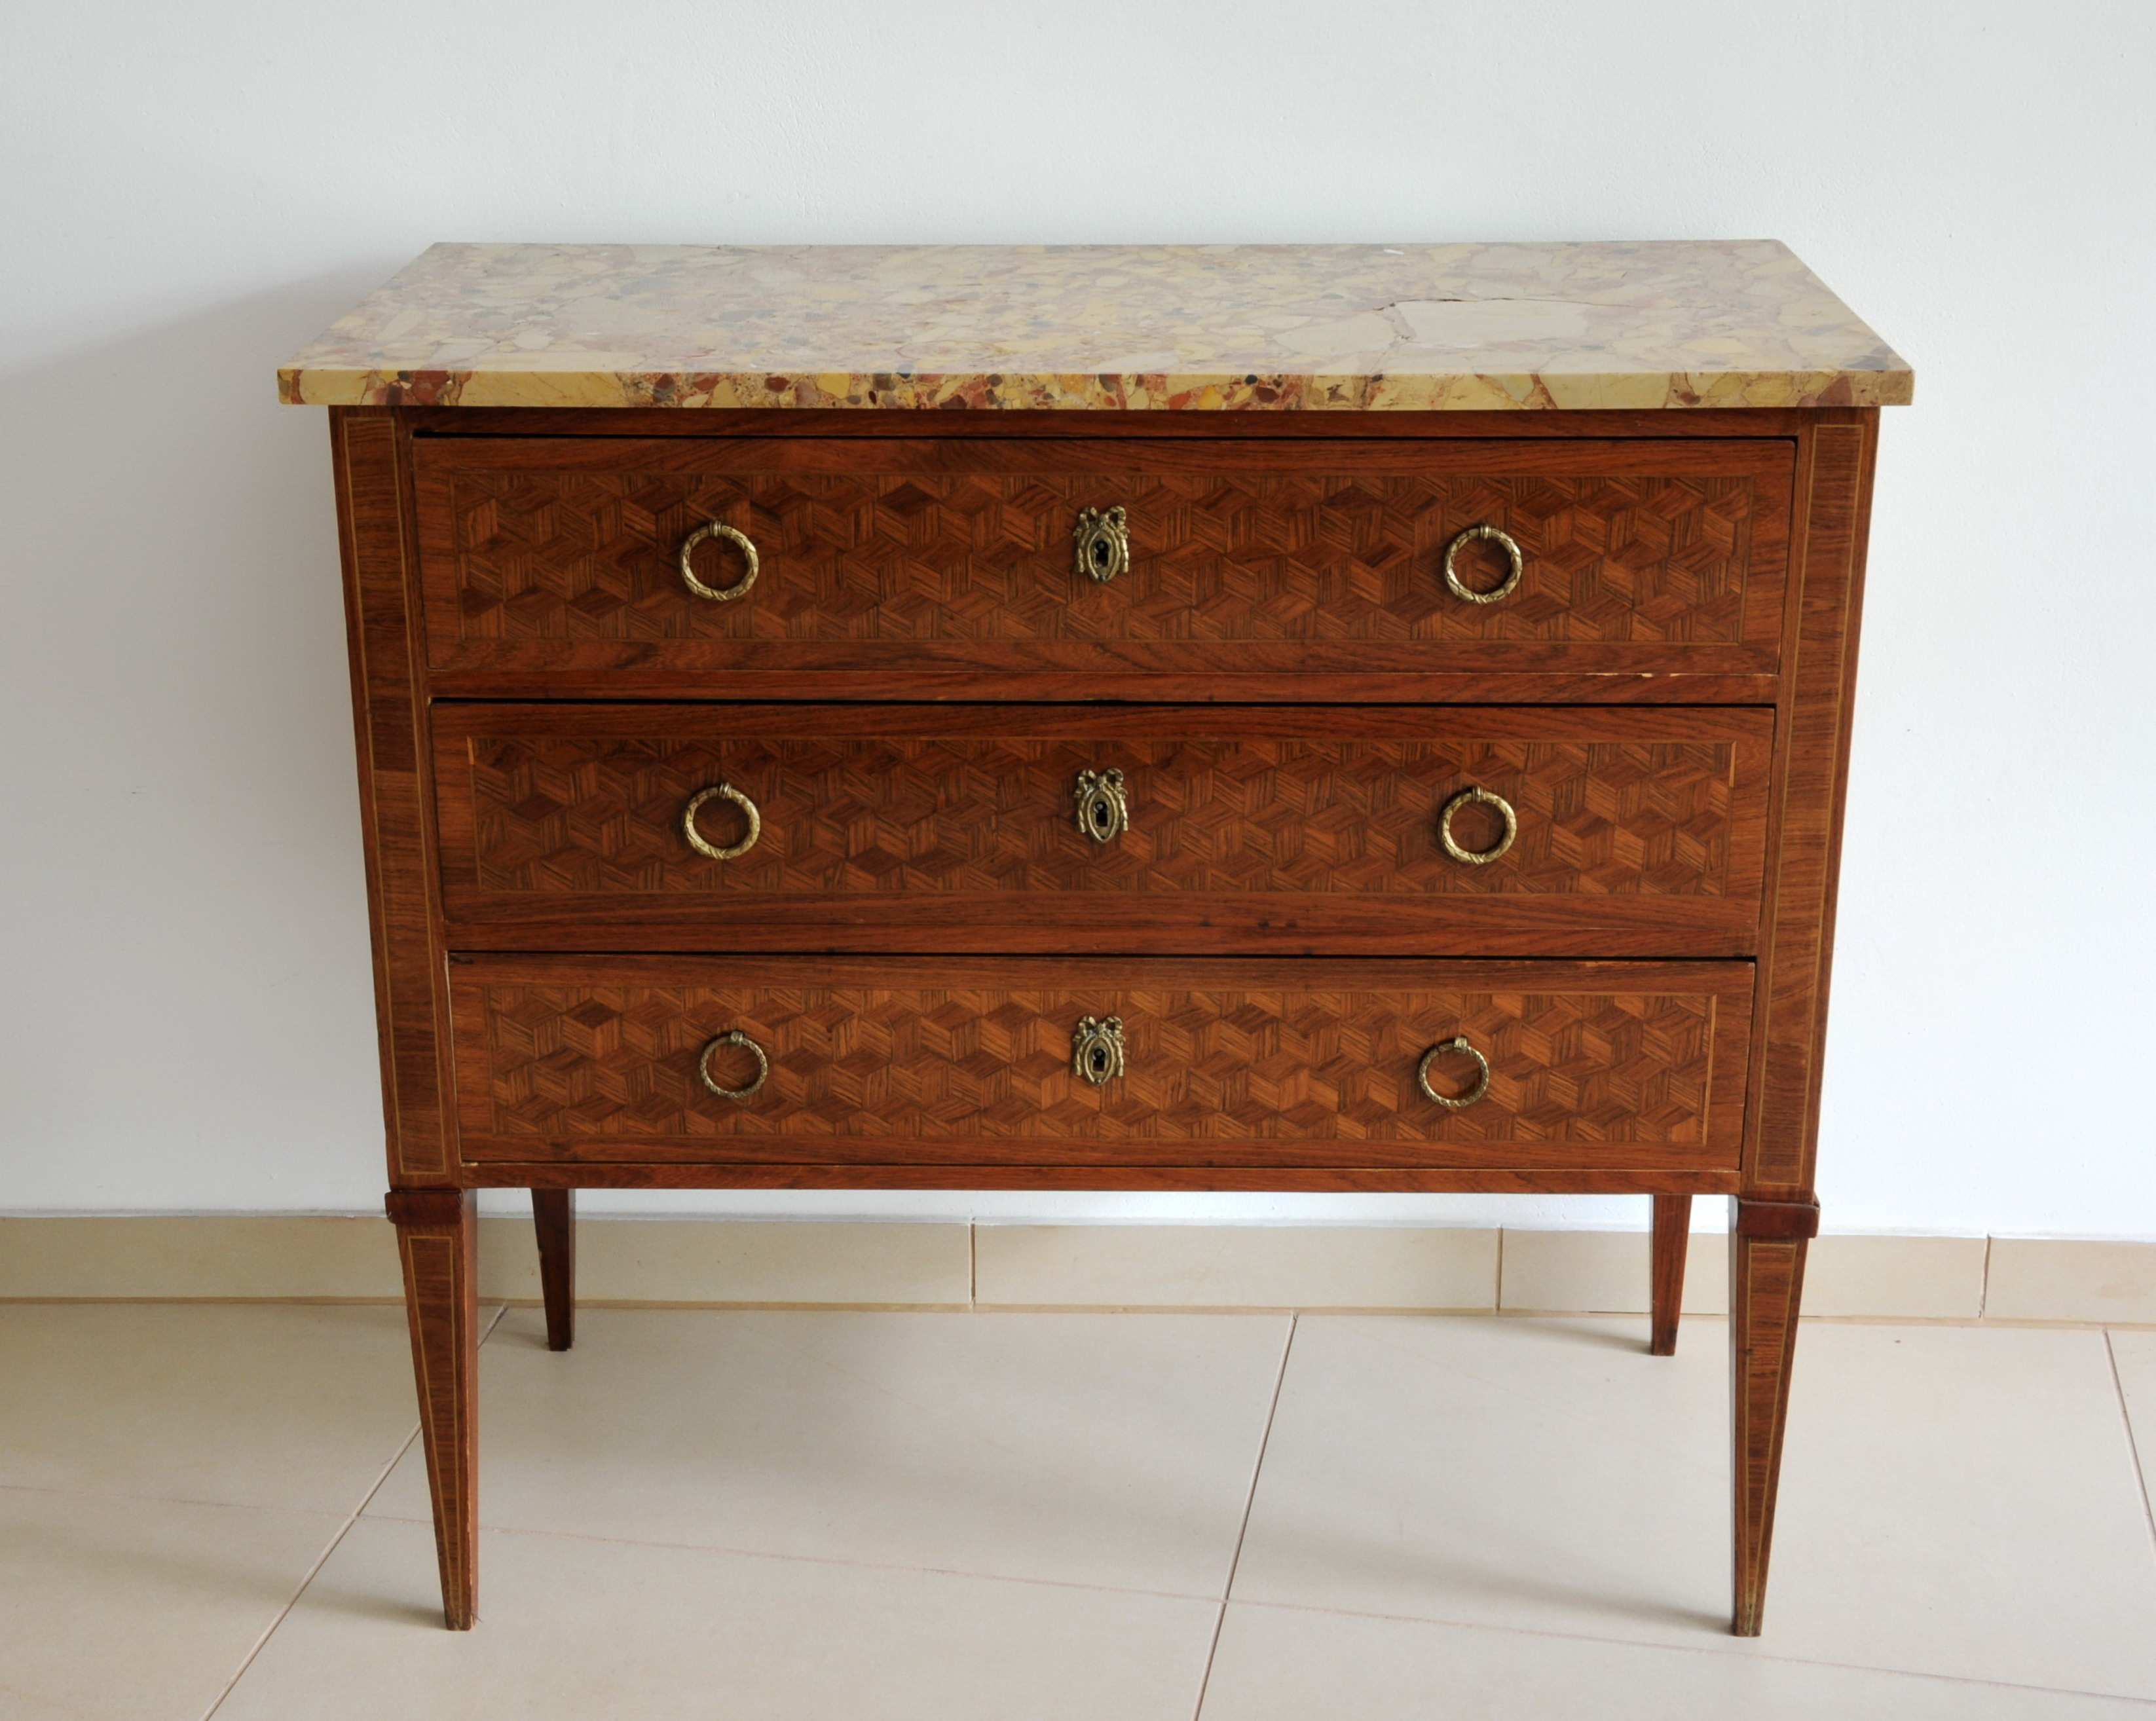 Kommode Palisander Kommode Empire Stil Furniture Chests Of Drawers Auctionet